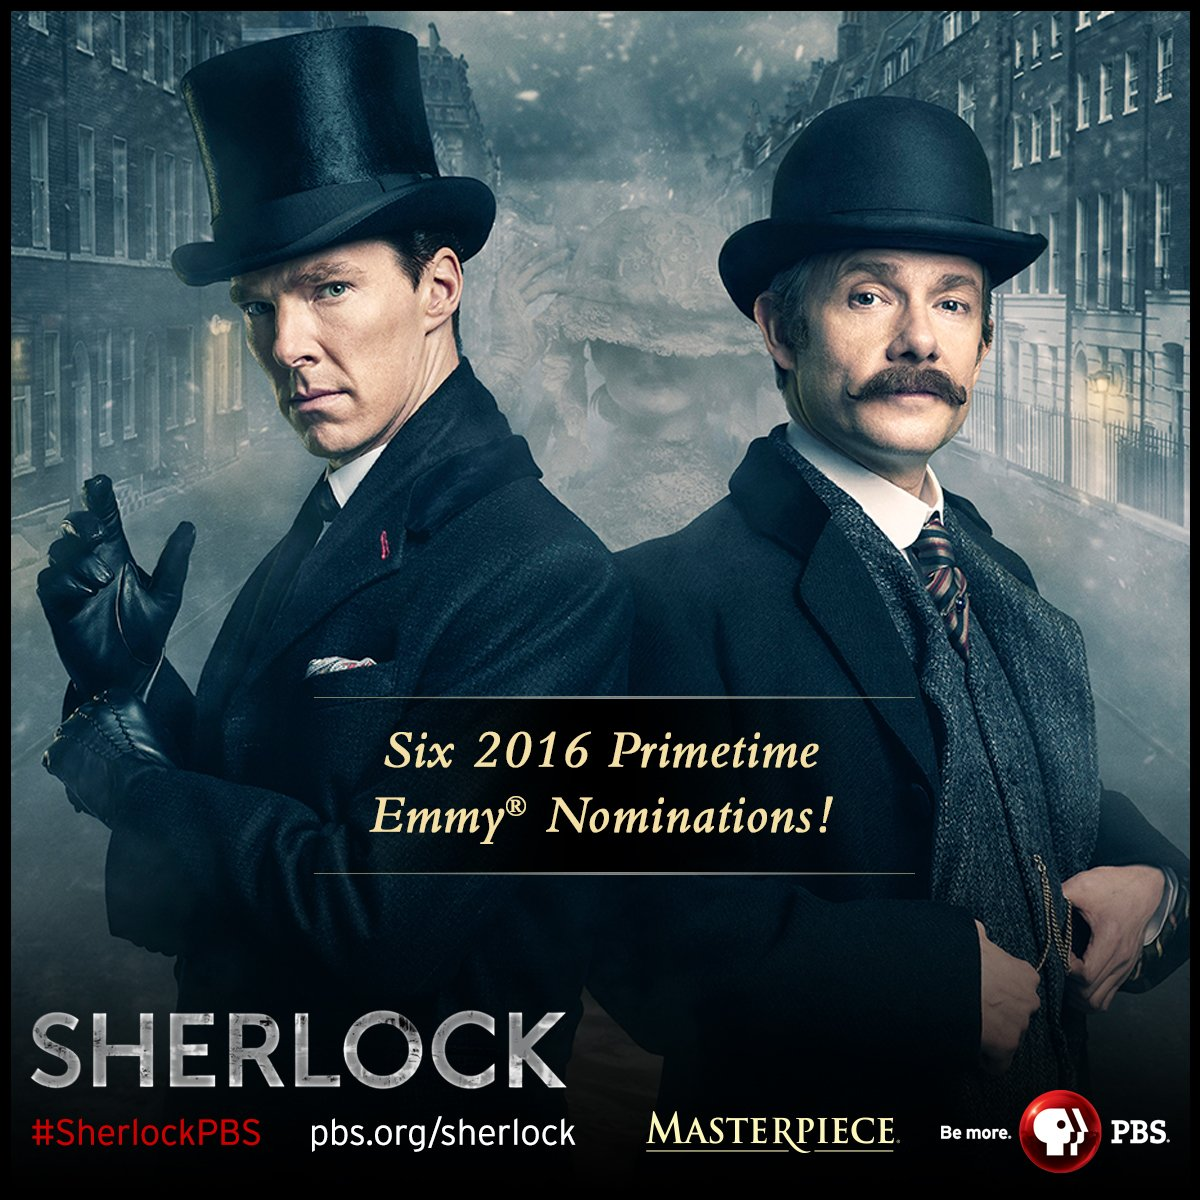 Congrats #SherlockPBS on SIX 2016 #Emmys noms, incl. Outstanding Lead Actor #BenedictCumberbatch & TV movie! https://t.co/QZNVDTemhw